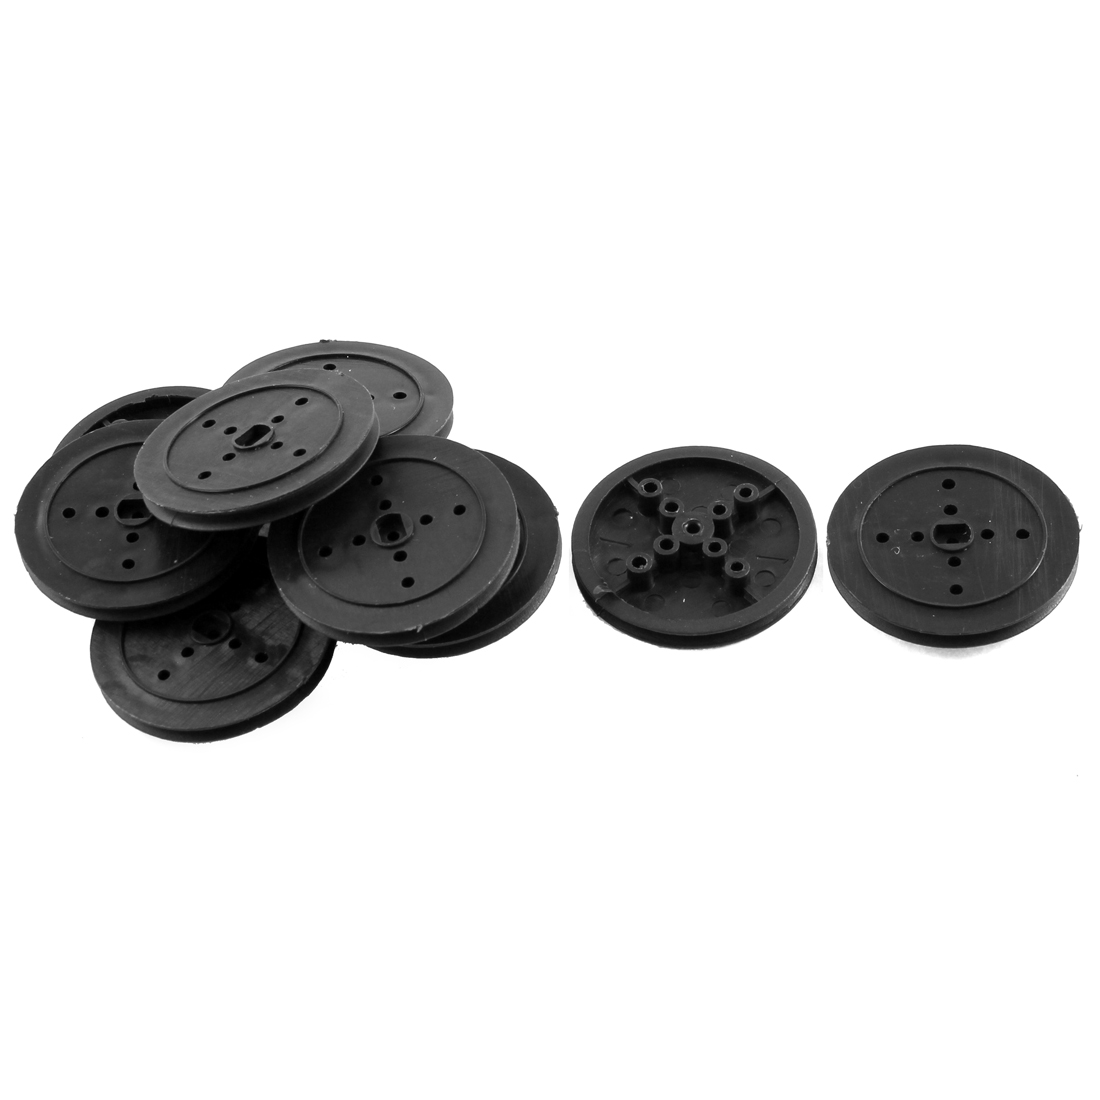 10Pcs Black Plastic 36mm Diameter 3mm Thickness Rubber Band Pulley